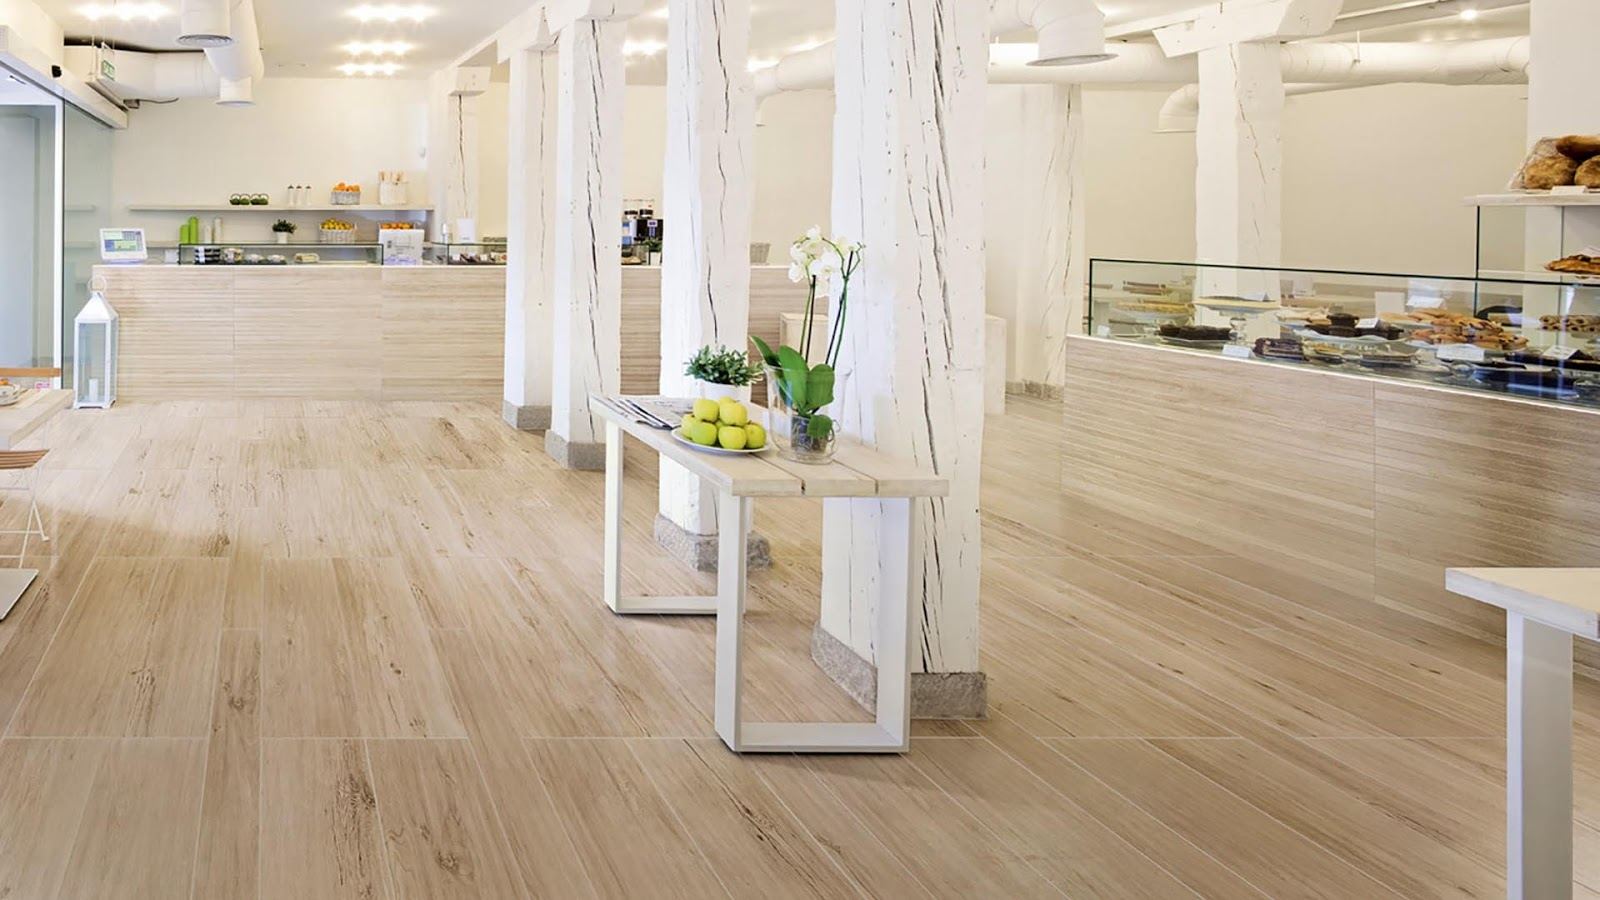 Wood Finish Tiles Root And Vibe Collection Floor Amp Wall